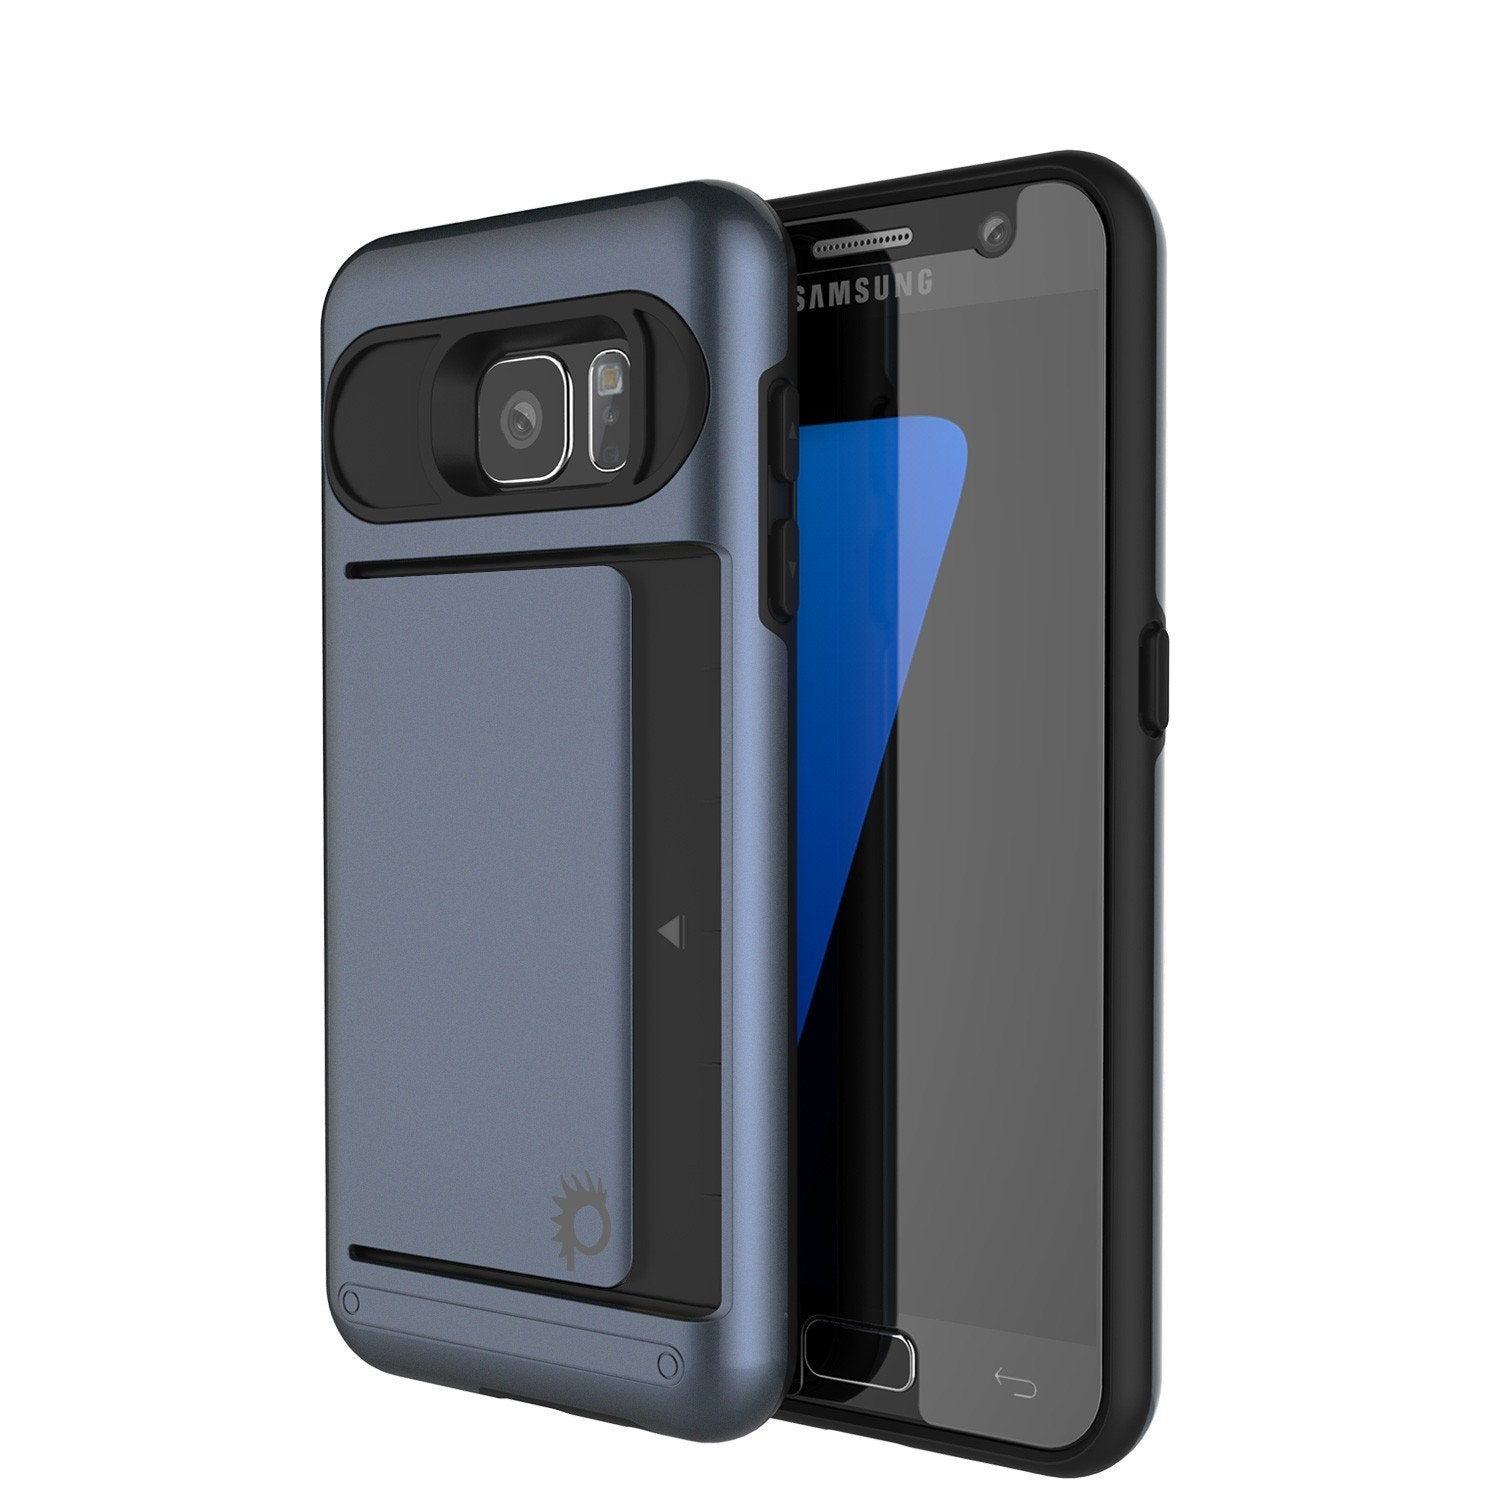 Galaxy S7 EDGE Case PunkCase CLUTCH Navy Series Slim Armor Soft Cover Case w/ Screen Protector